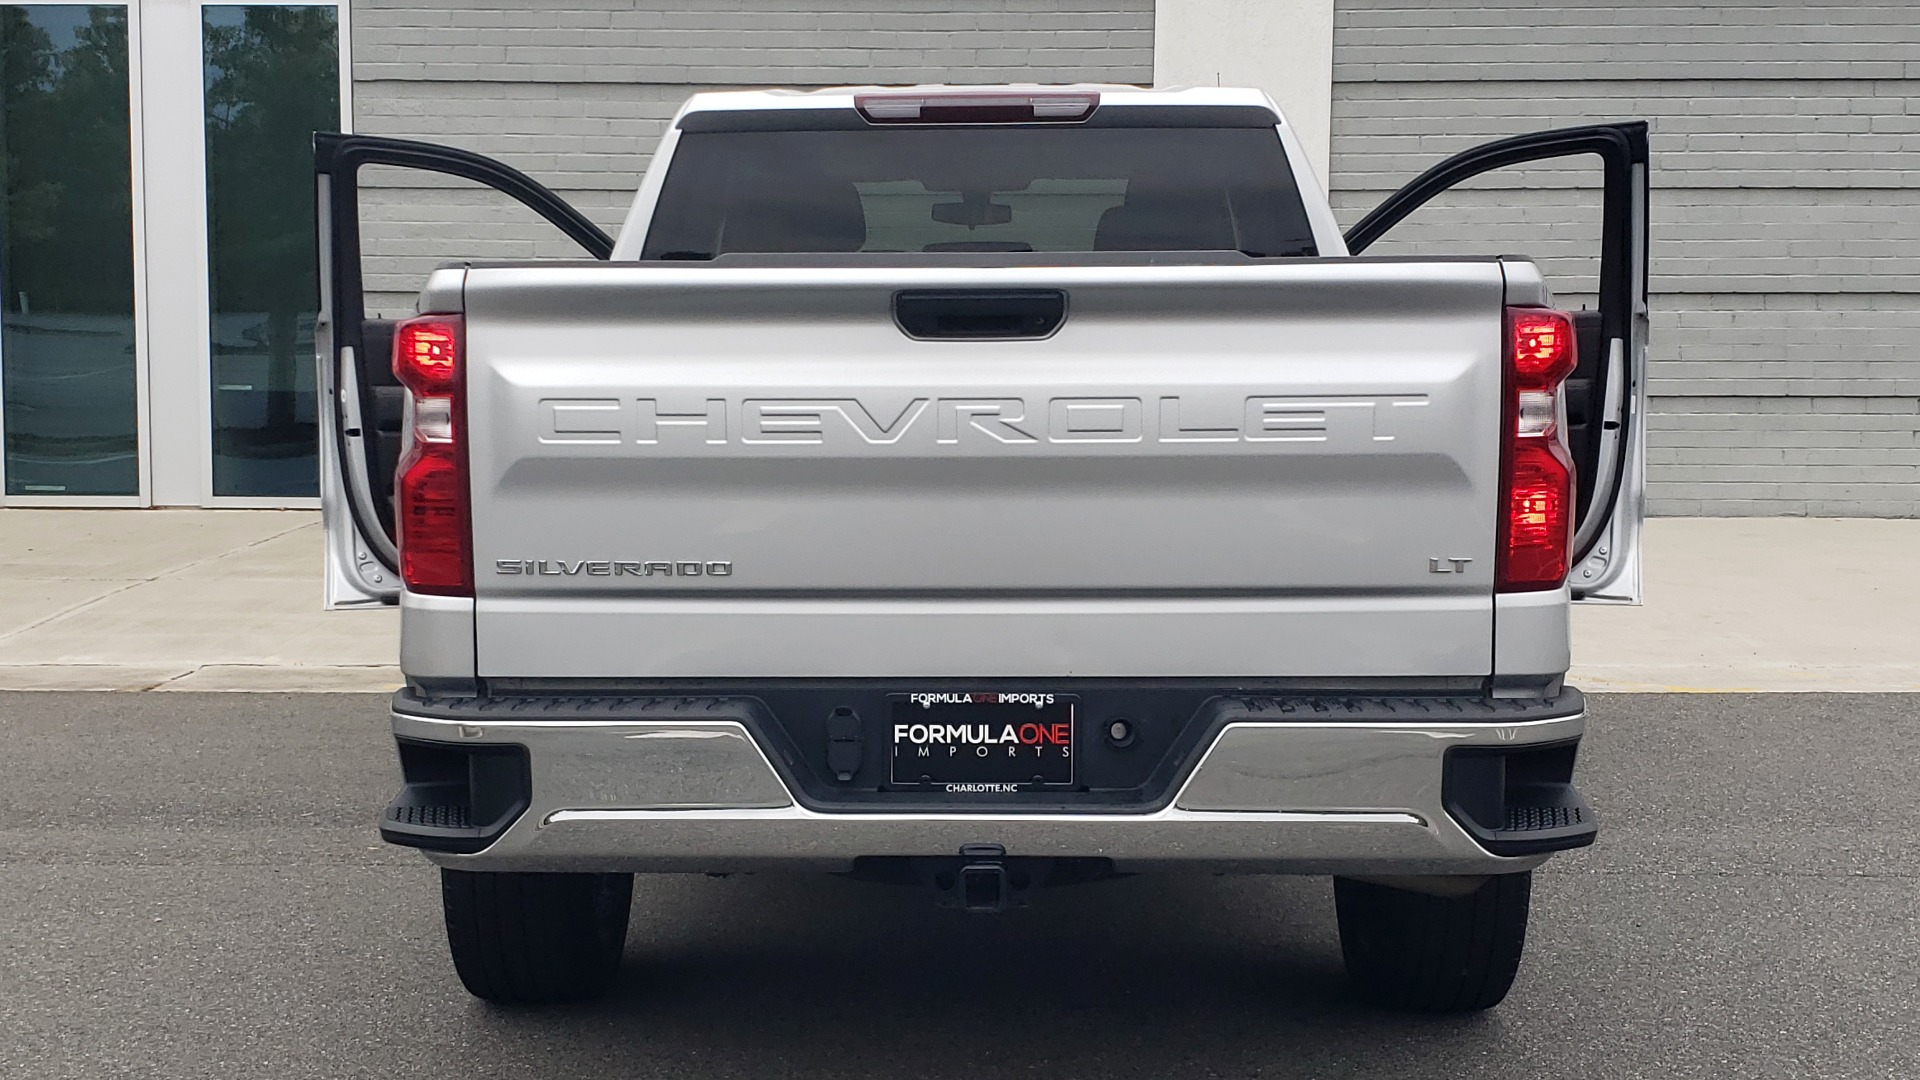 Used 2020 Chevrolet SILVERADO 1500 LT 4WD DOUBLECAB 147 WB / 5.3L V8 / BEDLINER / REARVIEW for sale $41,995 at Formula Imports in Charlotte NC 28227 26